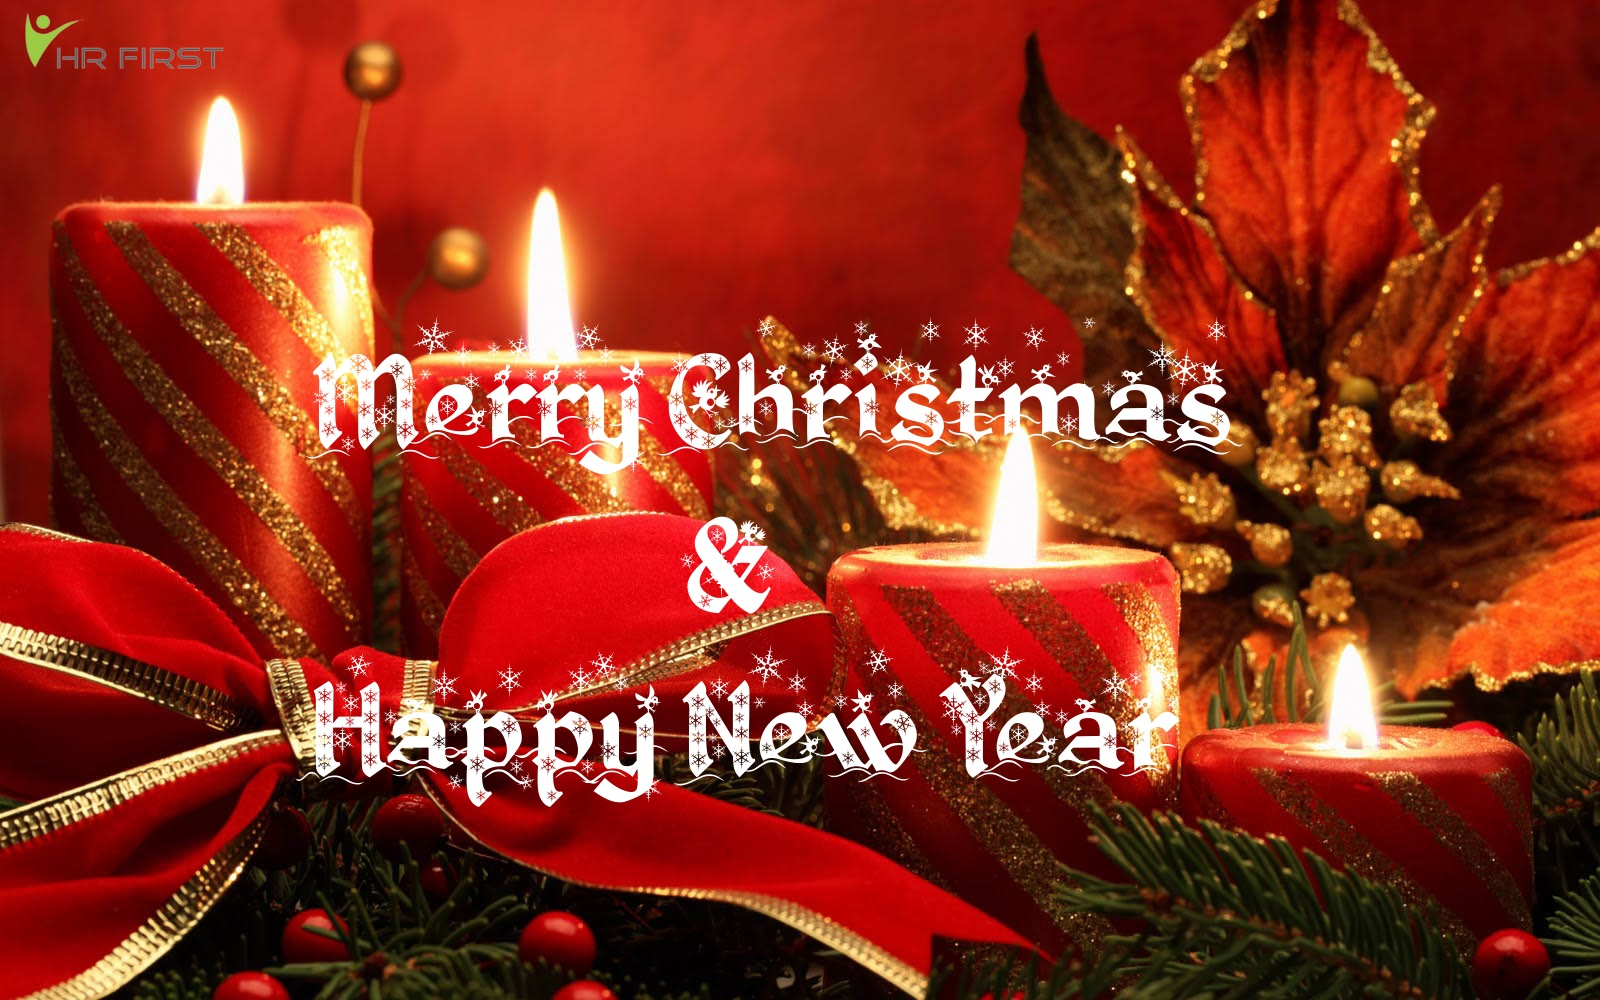 To all brothers and sisters in Christ, we wish you a Merry Christmas 2016 and Happy New Year 2017